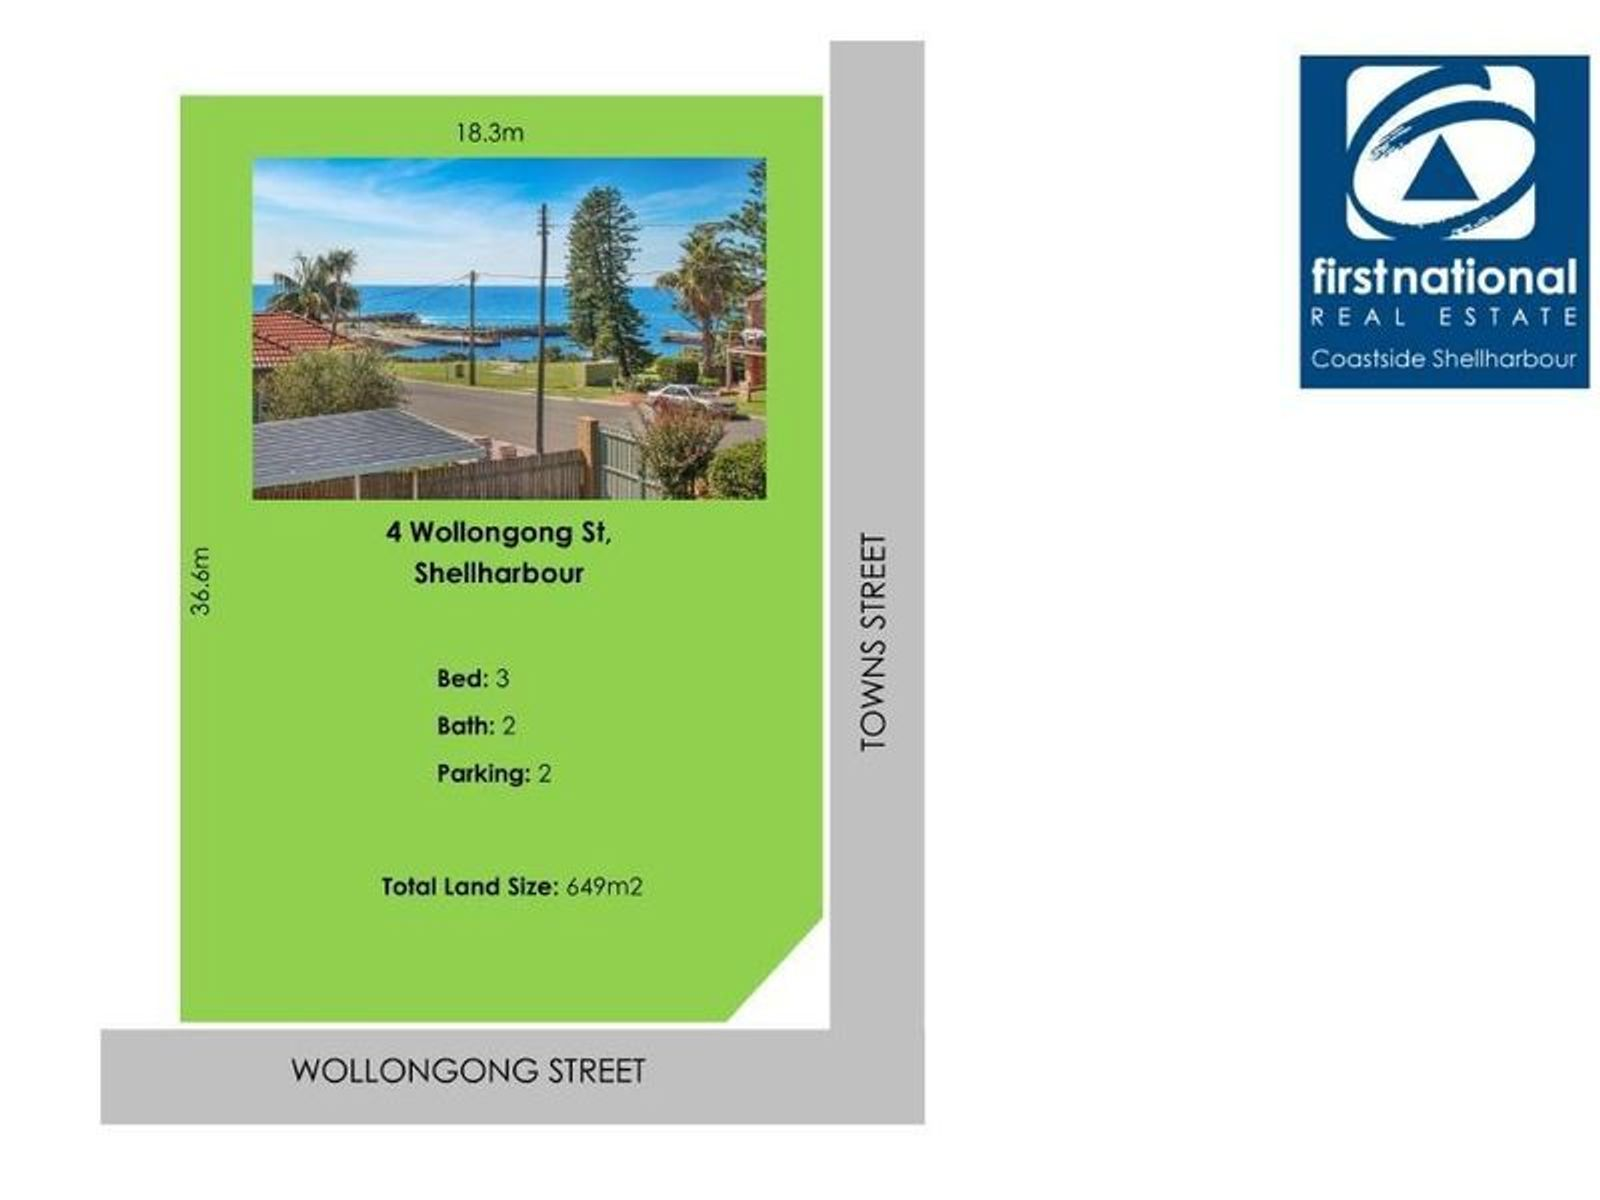 4 Wollongong Street, Shellharbour, NSW 2529